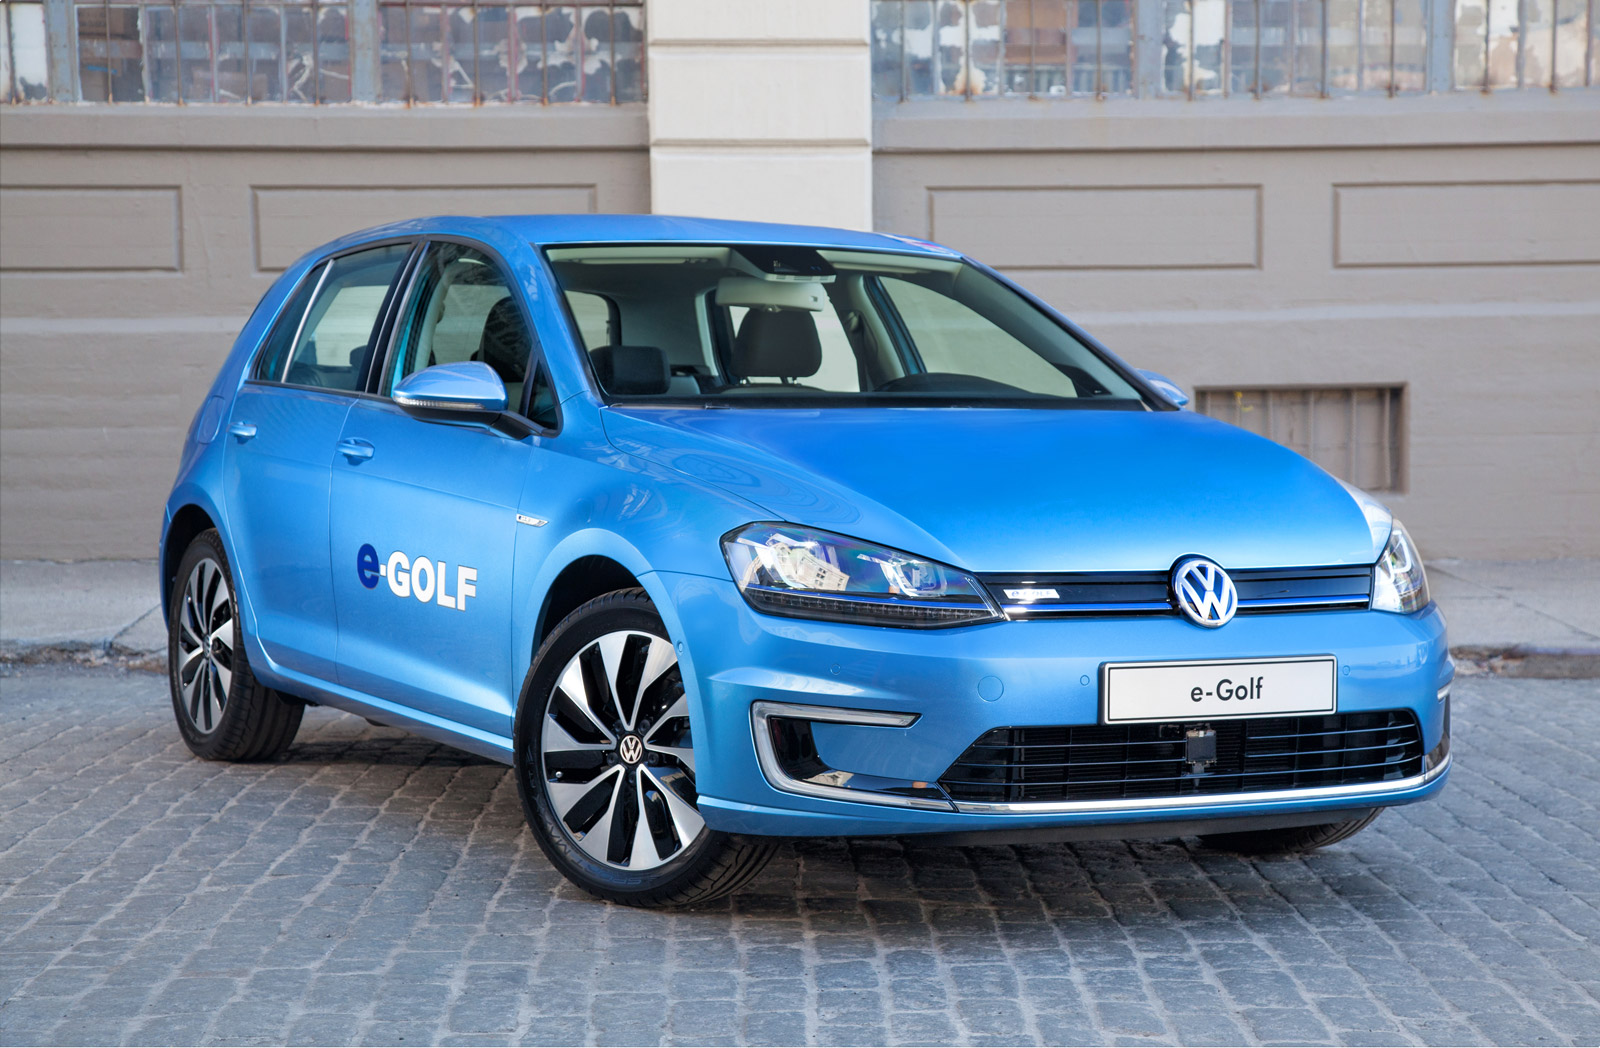 2015 volkswagen e golf rated at 83 miles range 116 mpge. Black Bedroom Furniture Sets. Home Design Ideas